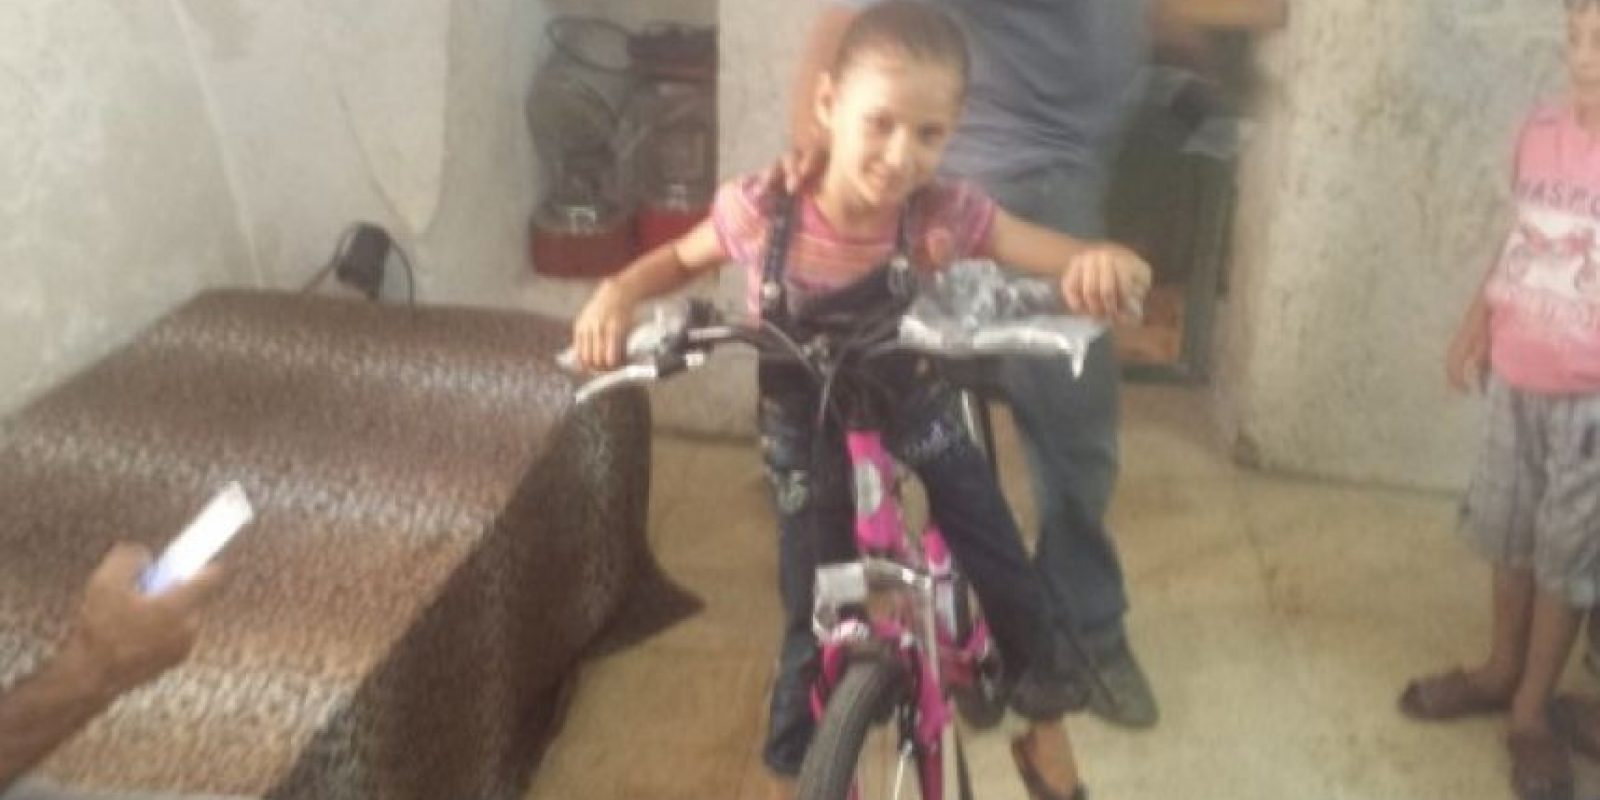 La niña palestina que recibió la nueva bicicleta Foto:  Path of Hope and Peace organization